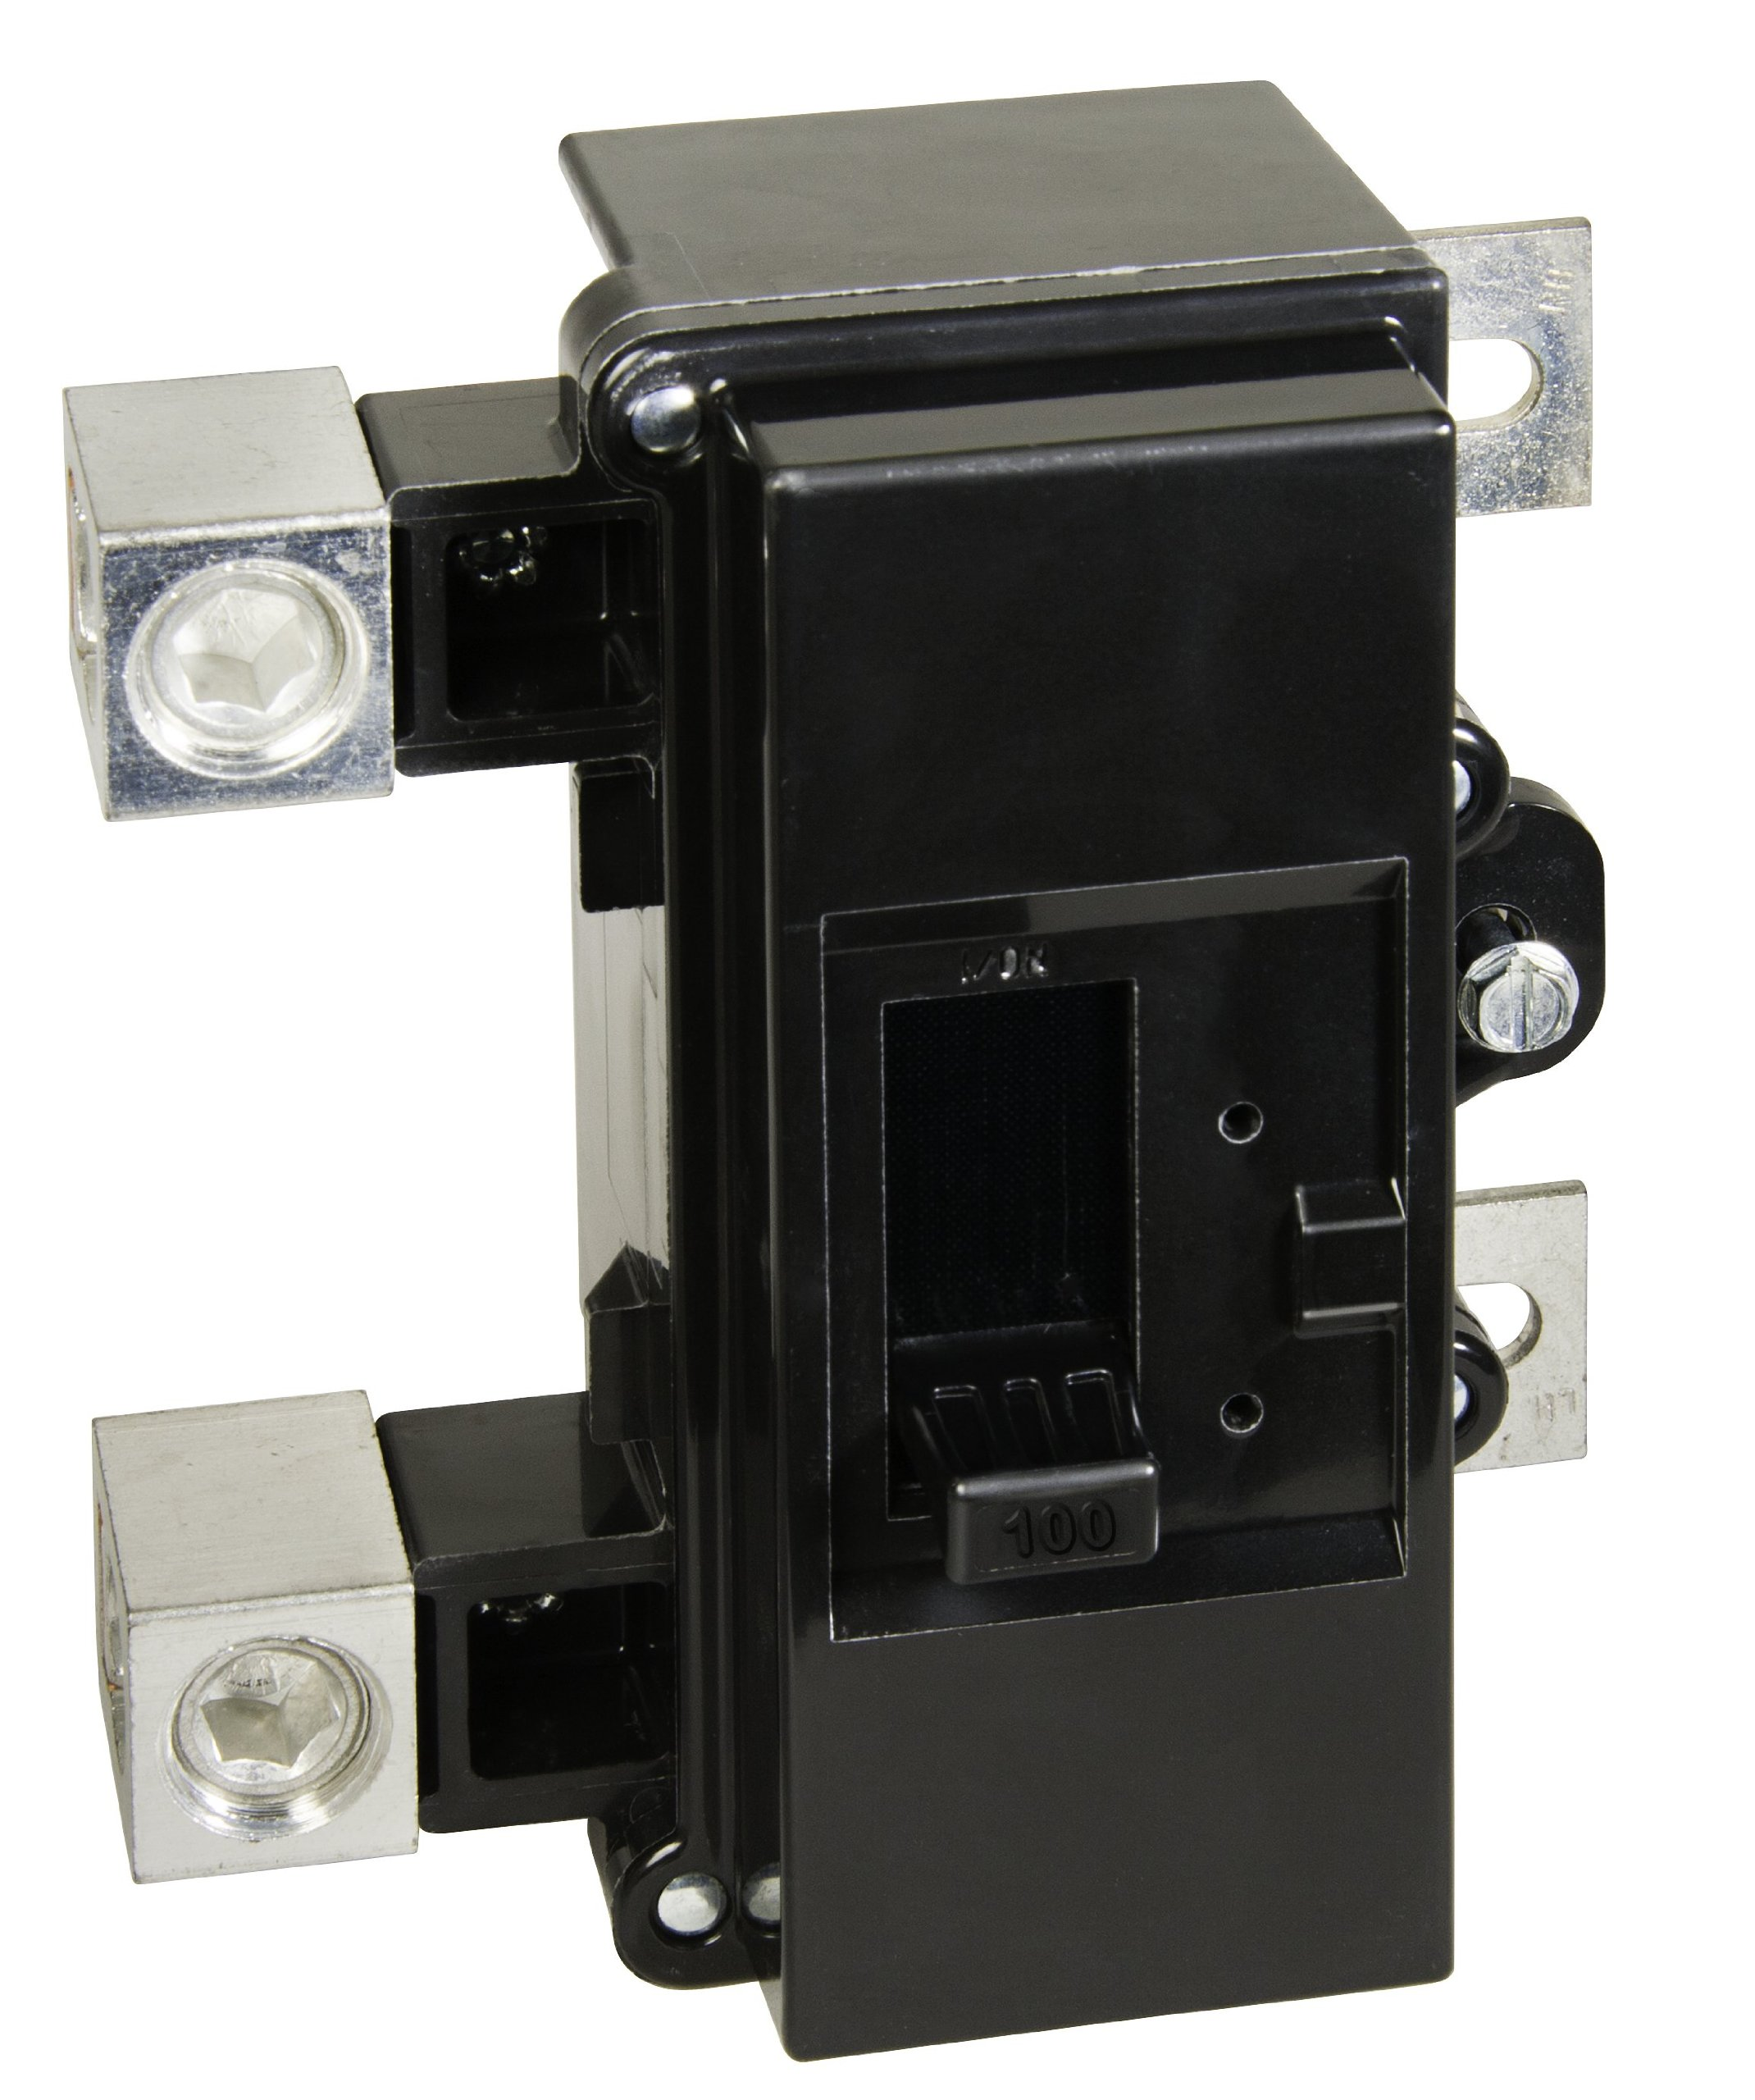 Square D by Schneider Electric QOM2100VH 100-Amp QOM2 Frame Size Main Circuit Breaker for QO and Homeline Load Centers by Square D by Schneider Electric